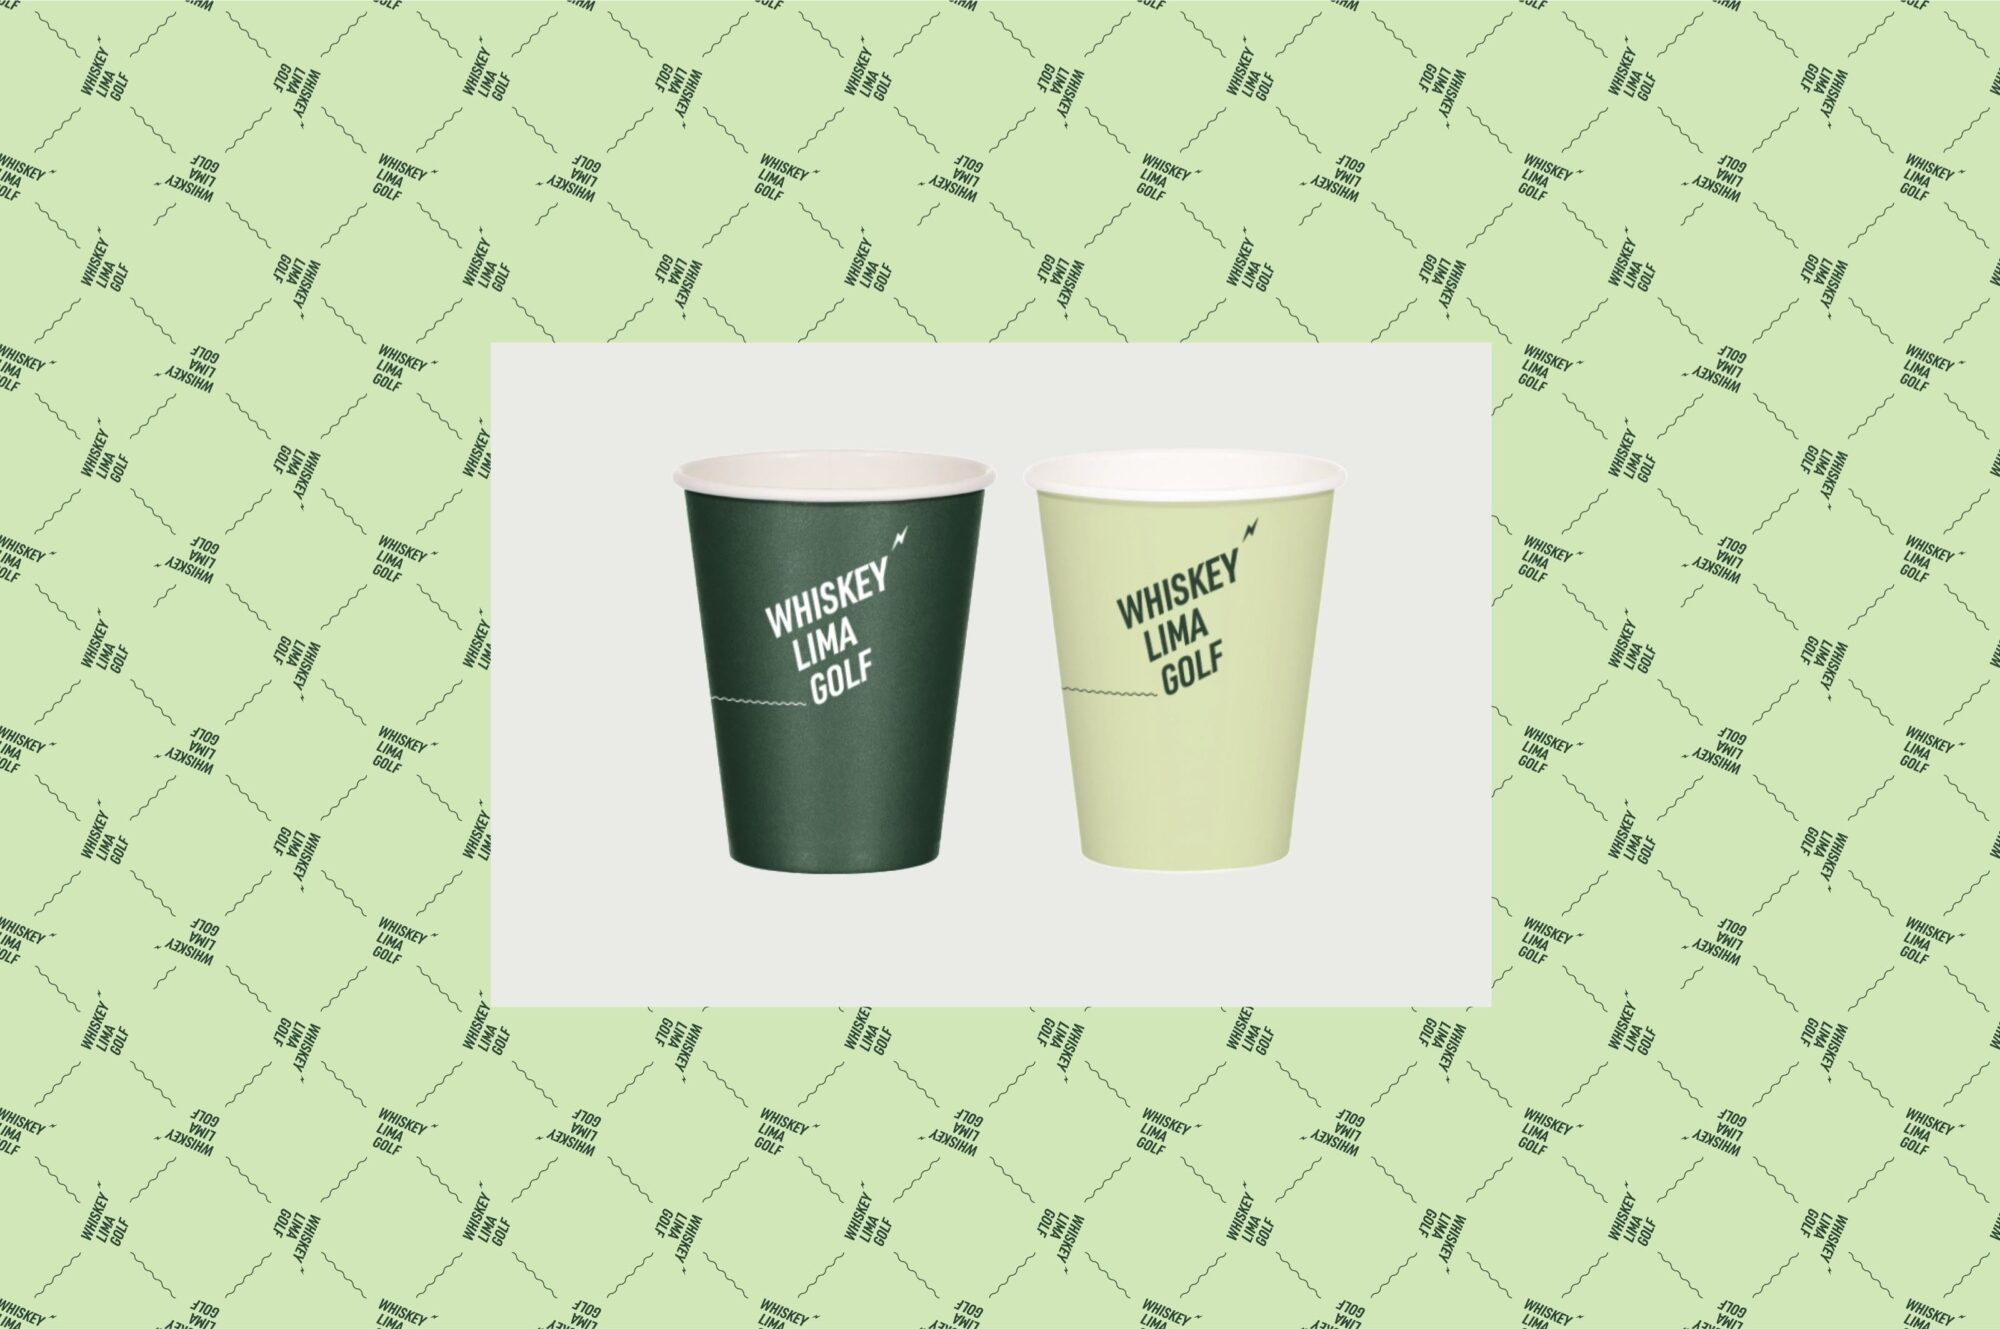 WLG pattern and take away cup designs